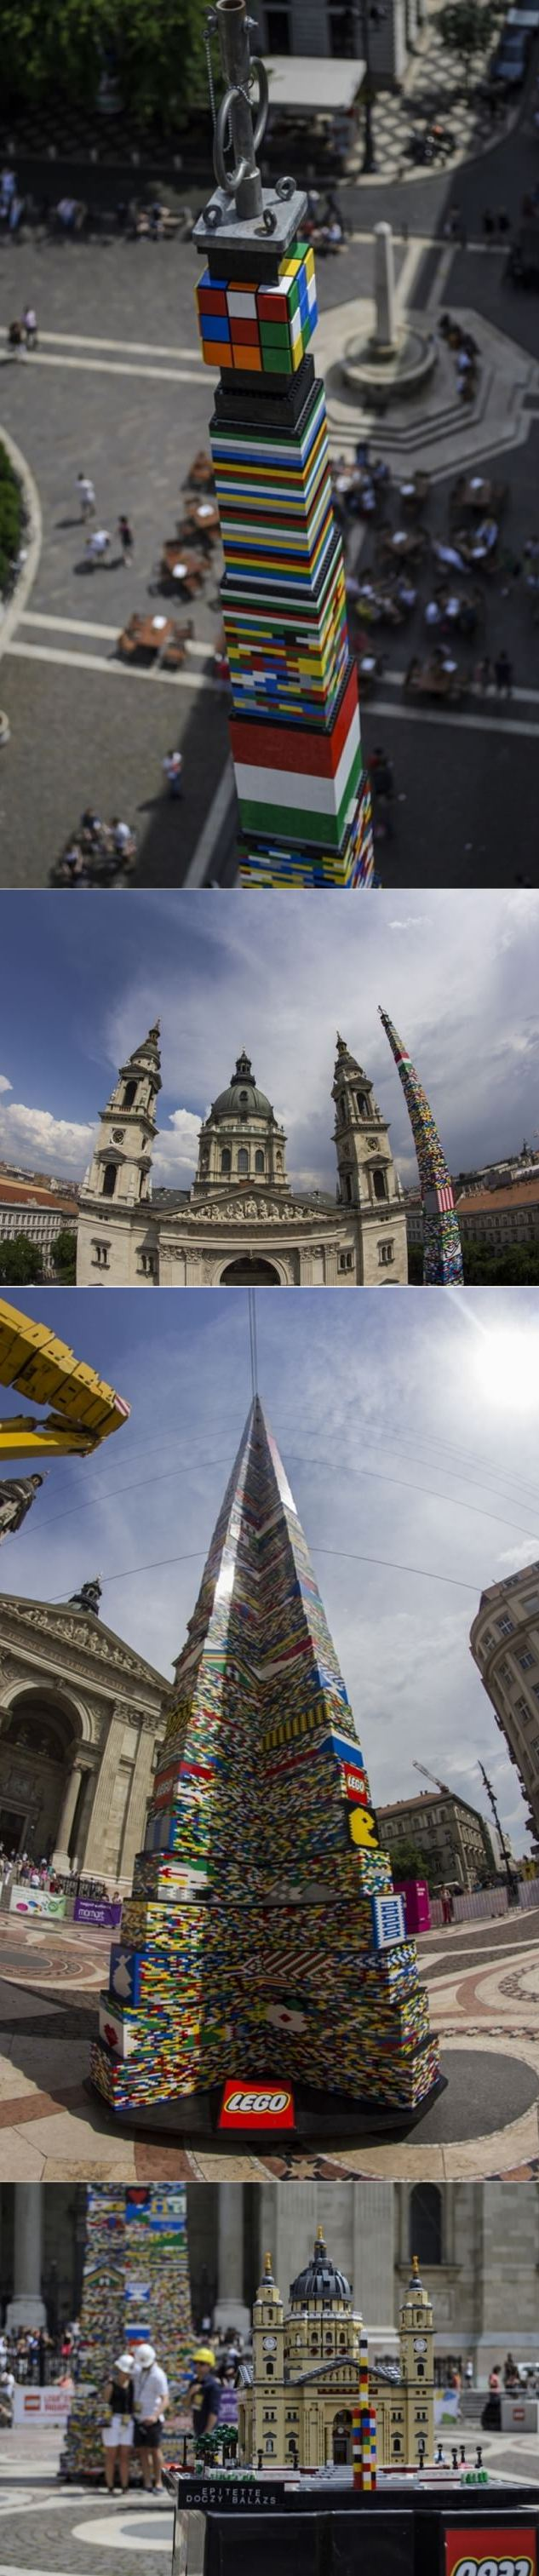 The World's Tallest LEGO Tower in Hungary